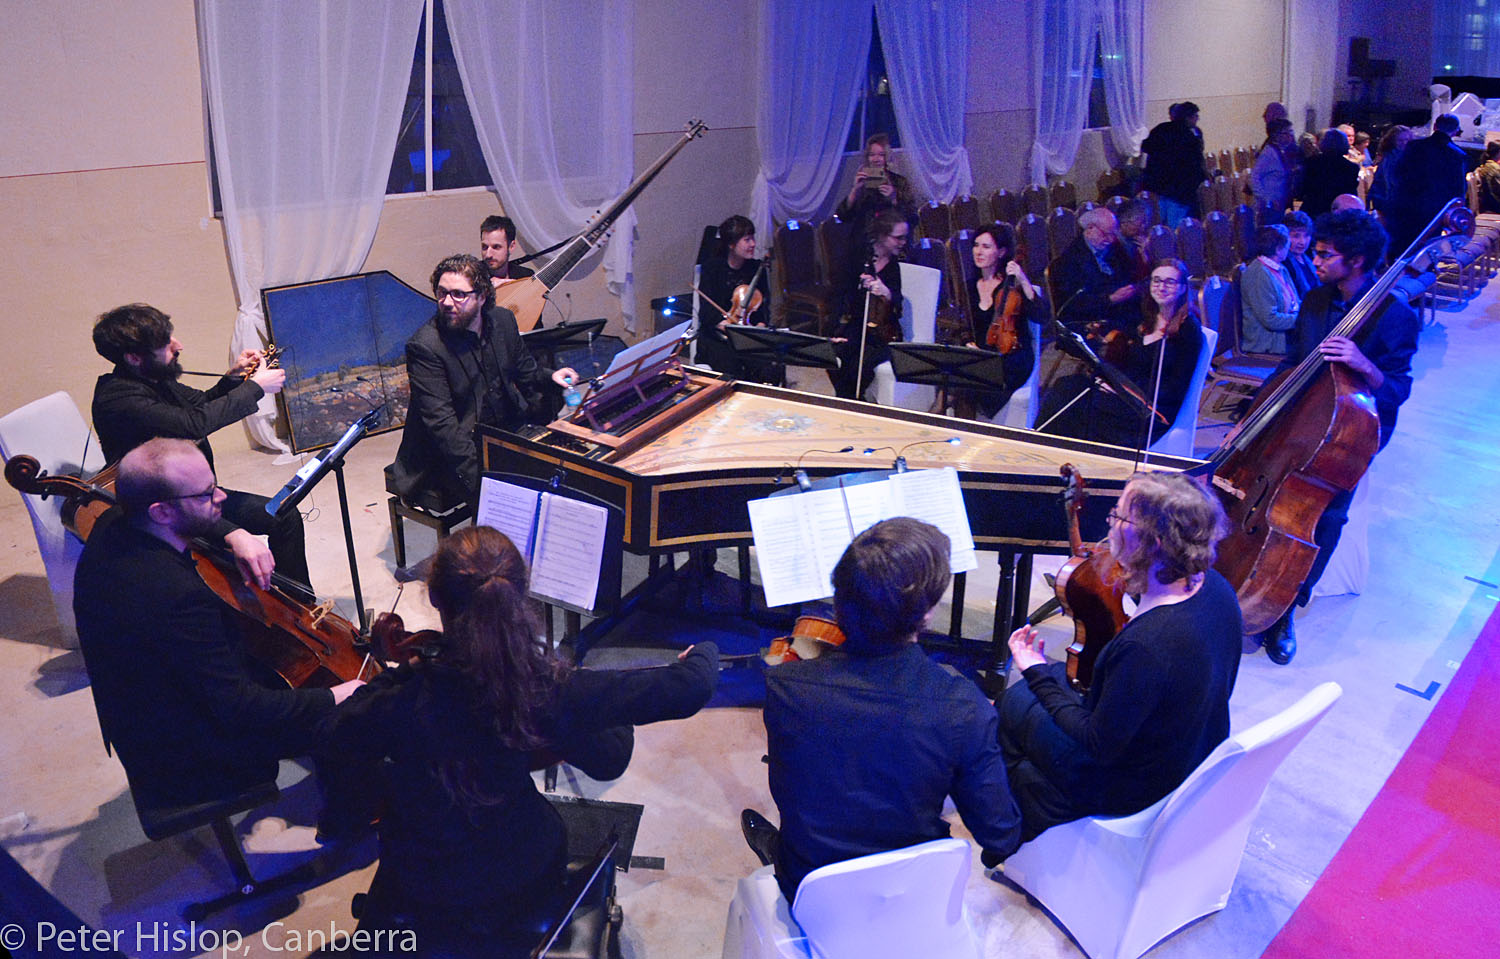 CIMF 2016 - Concert 17 - Battle of the Sexes. The orchestra settles in befoe the concert